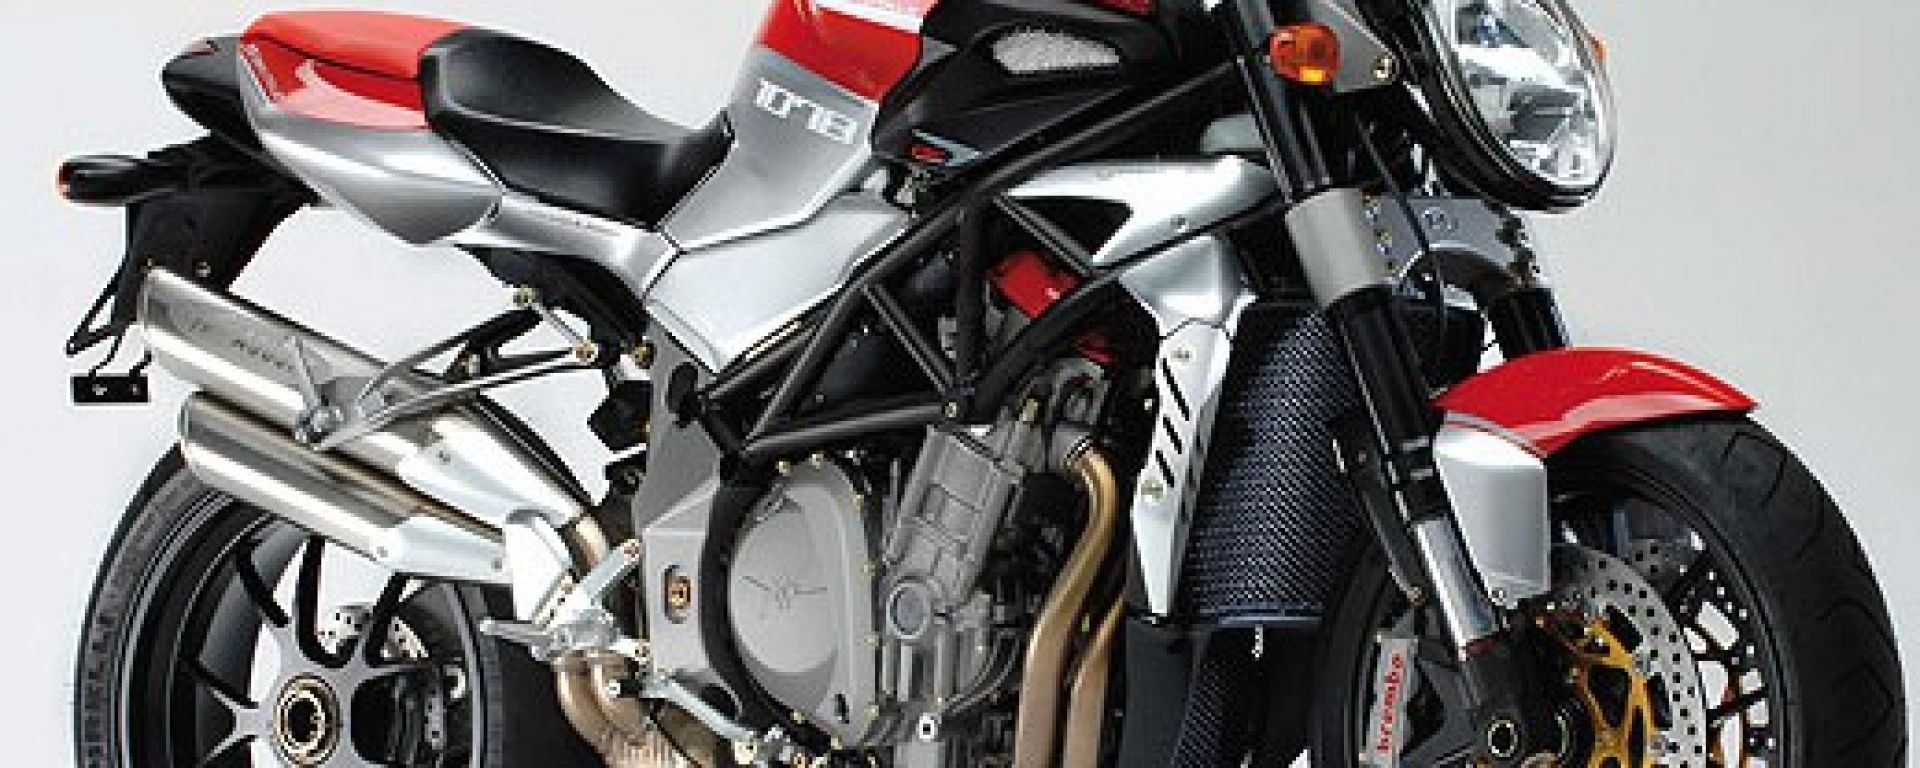 MV AGUSTA: Brutale On Tour 2009